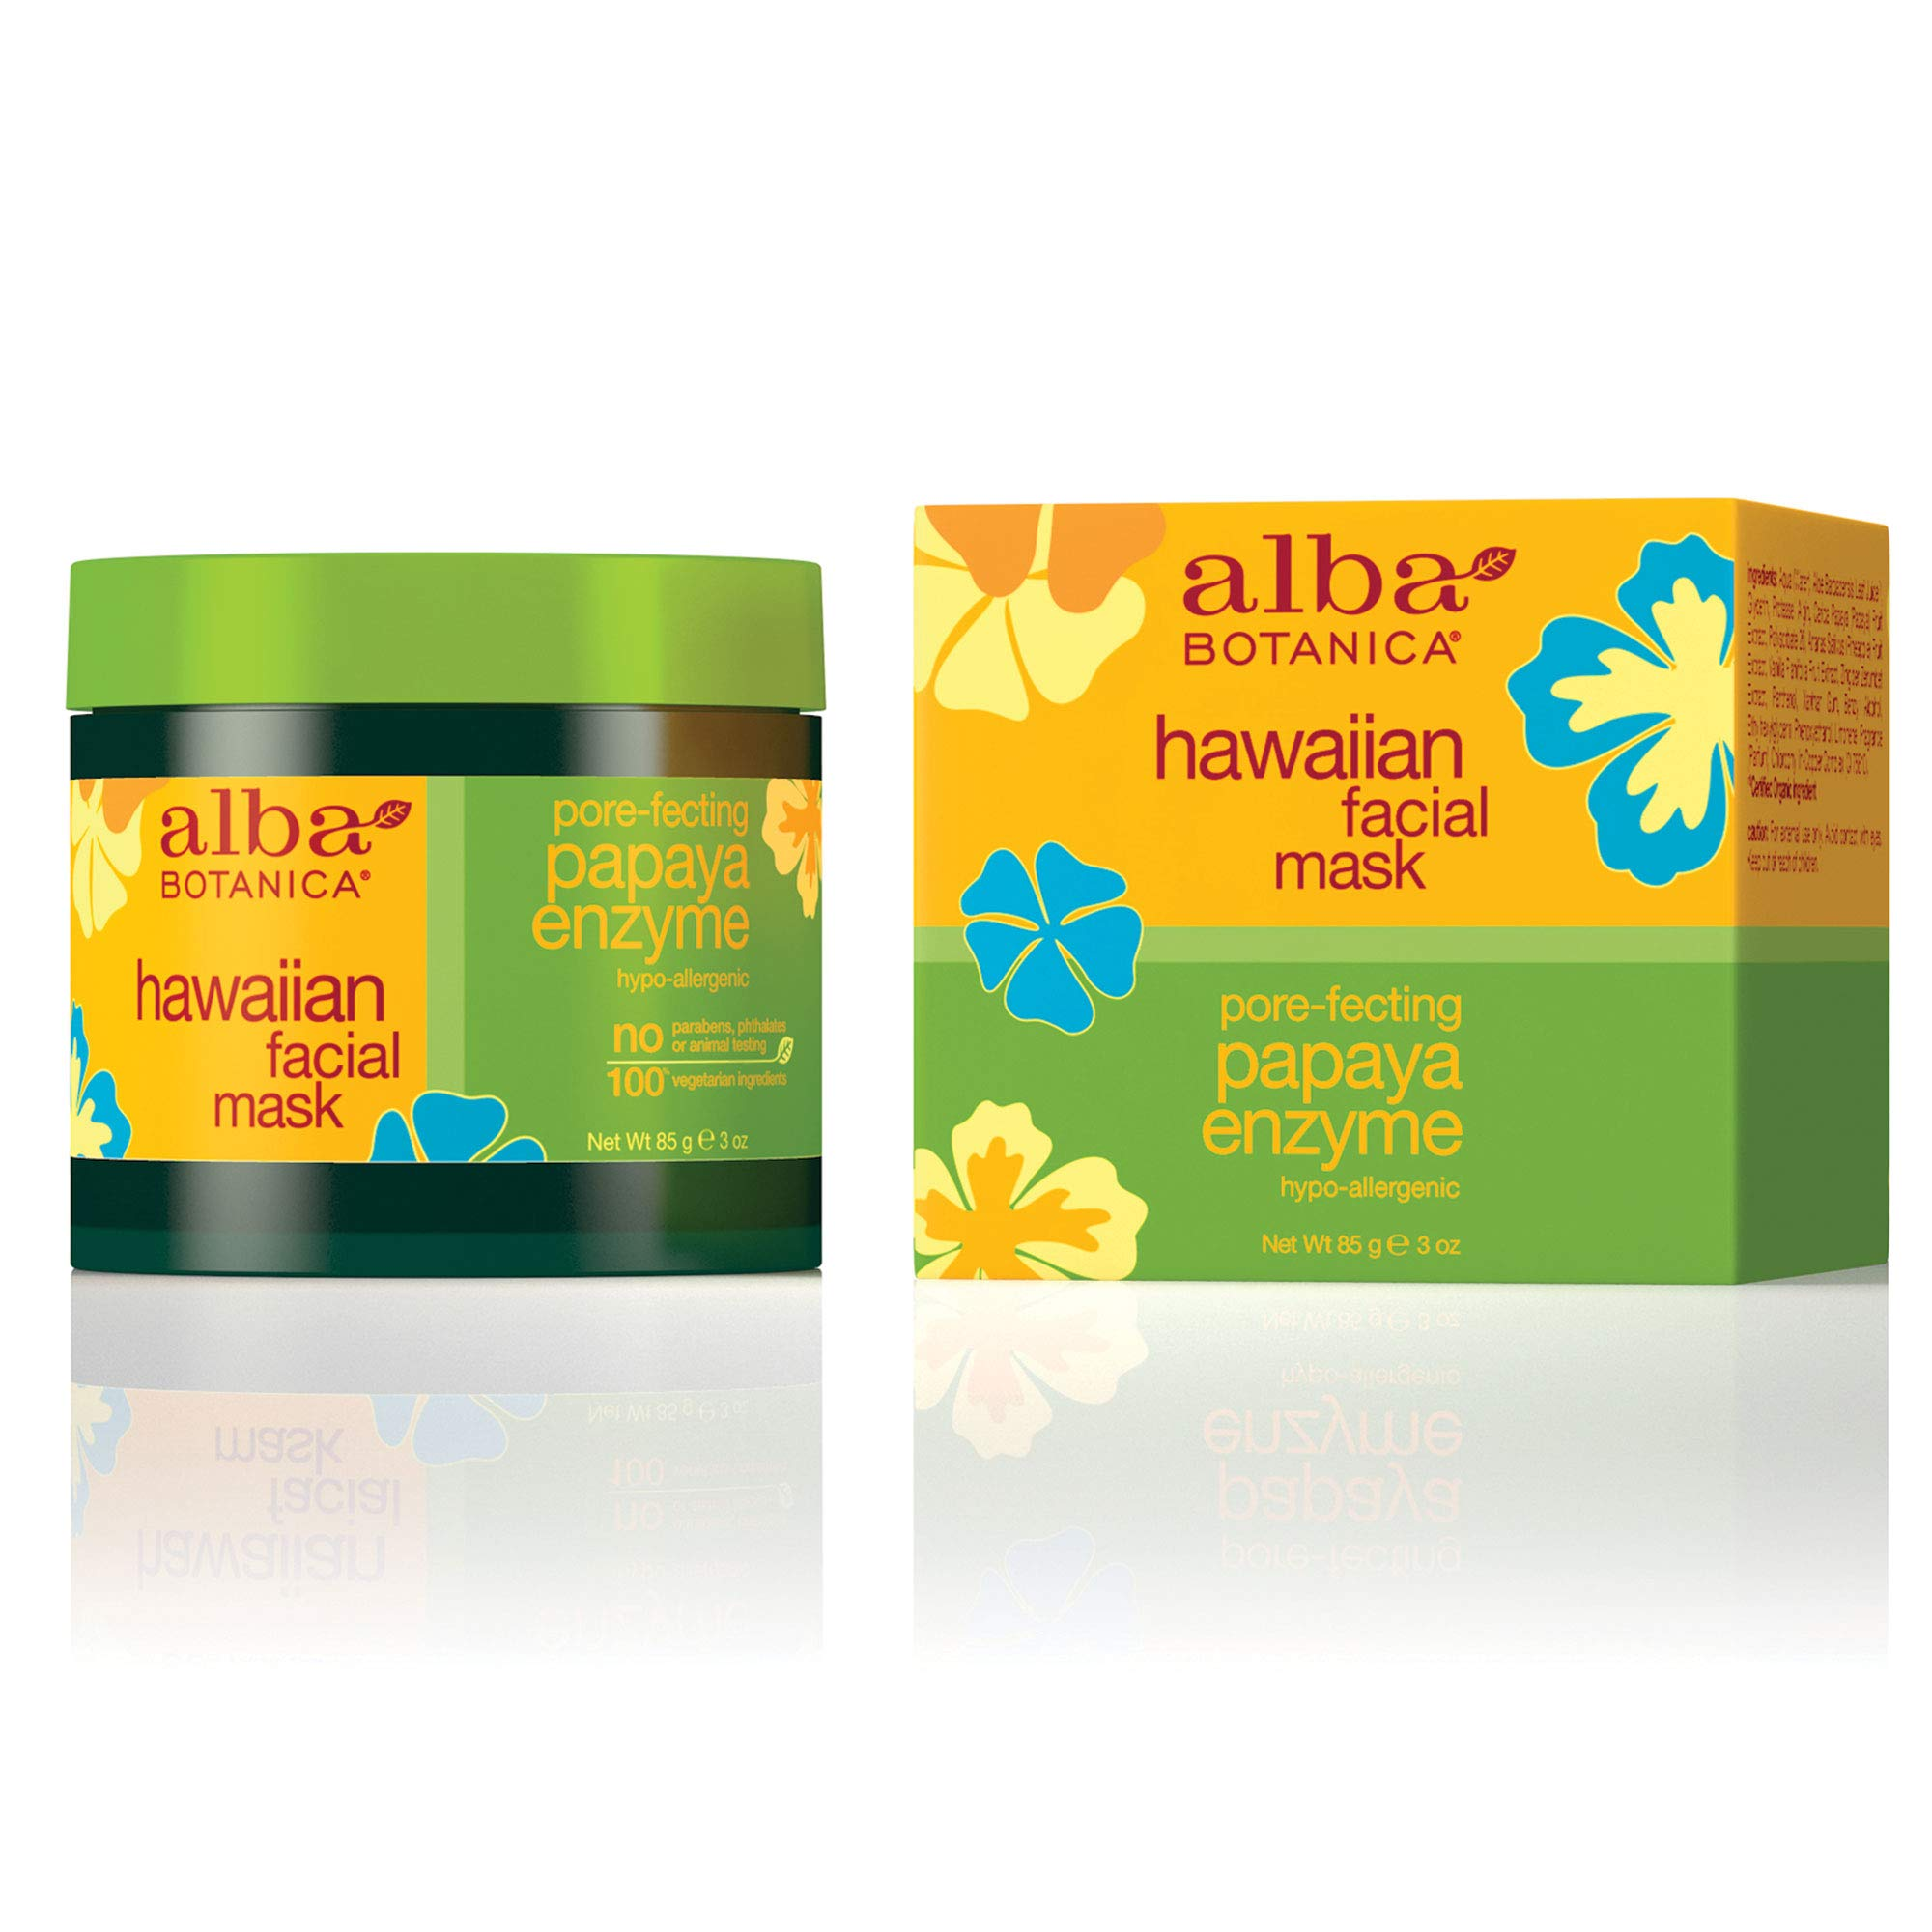 Alba Botanica Pore Fecting Papaya Hawaiian